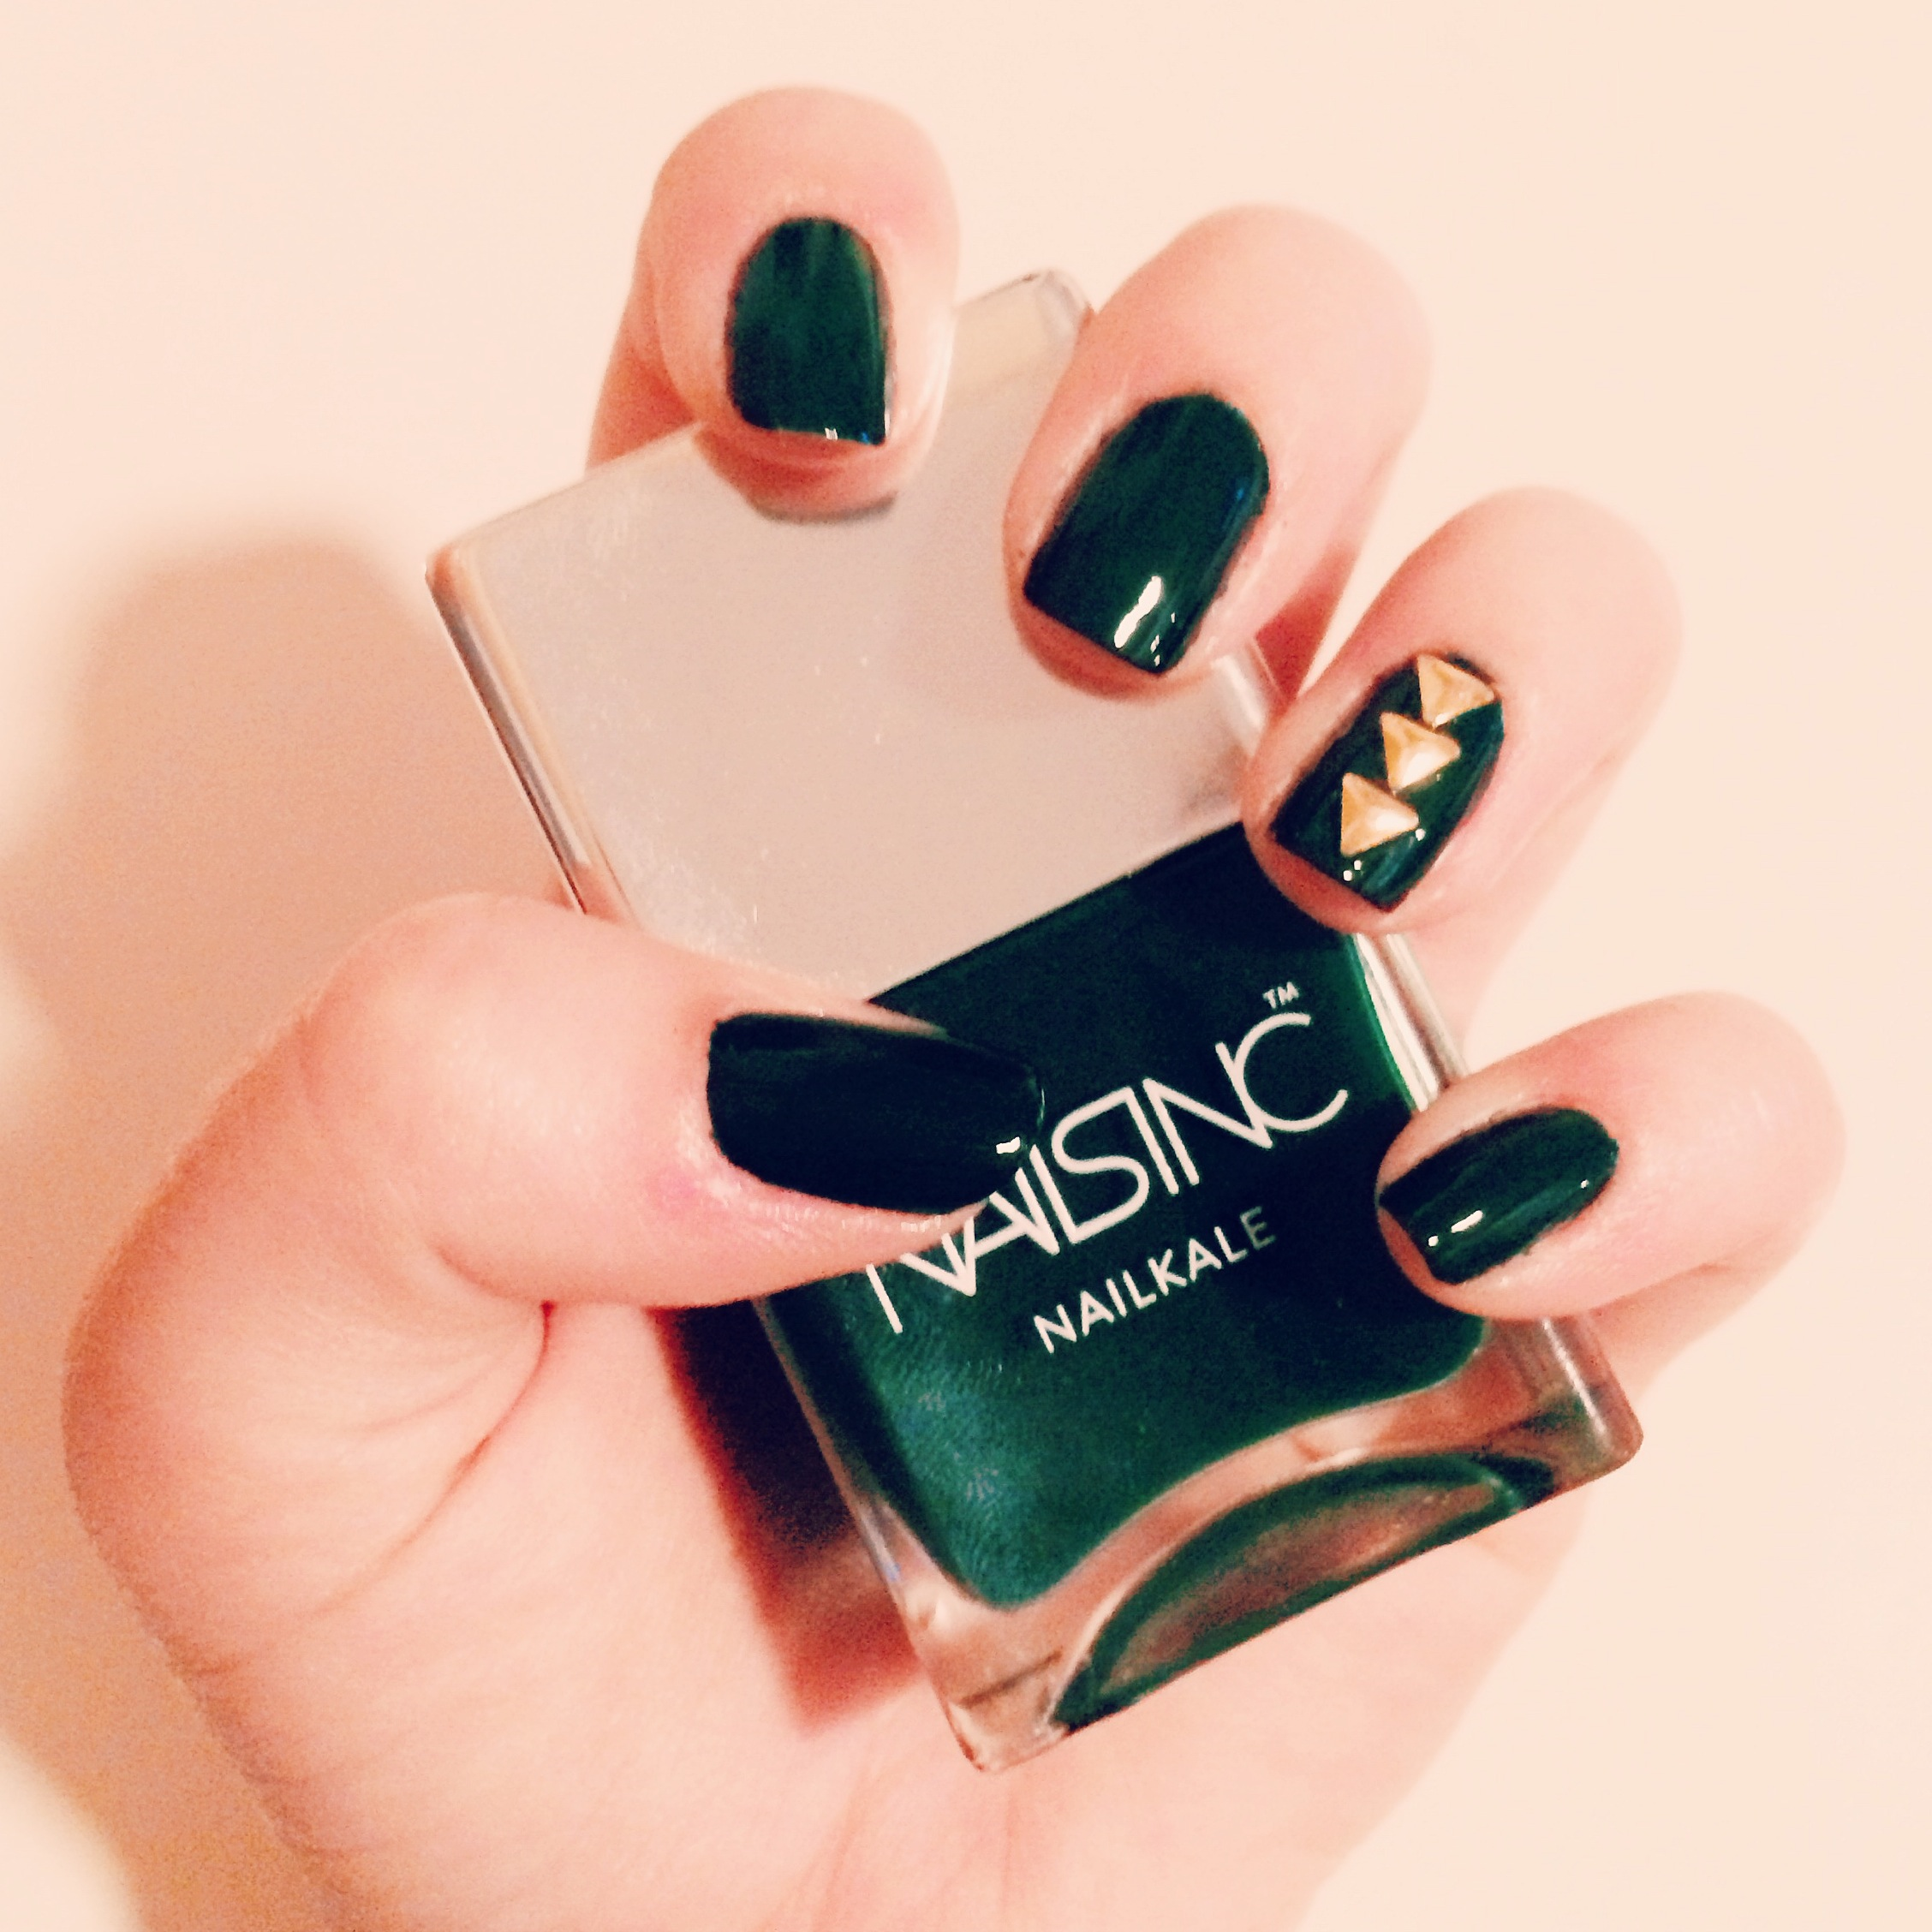 Nails Inc | Novels and Nail Polish